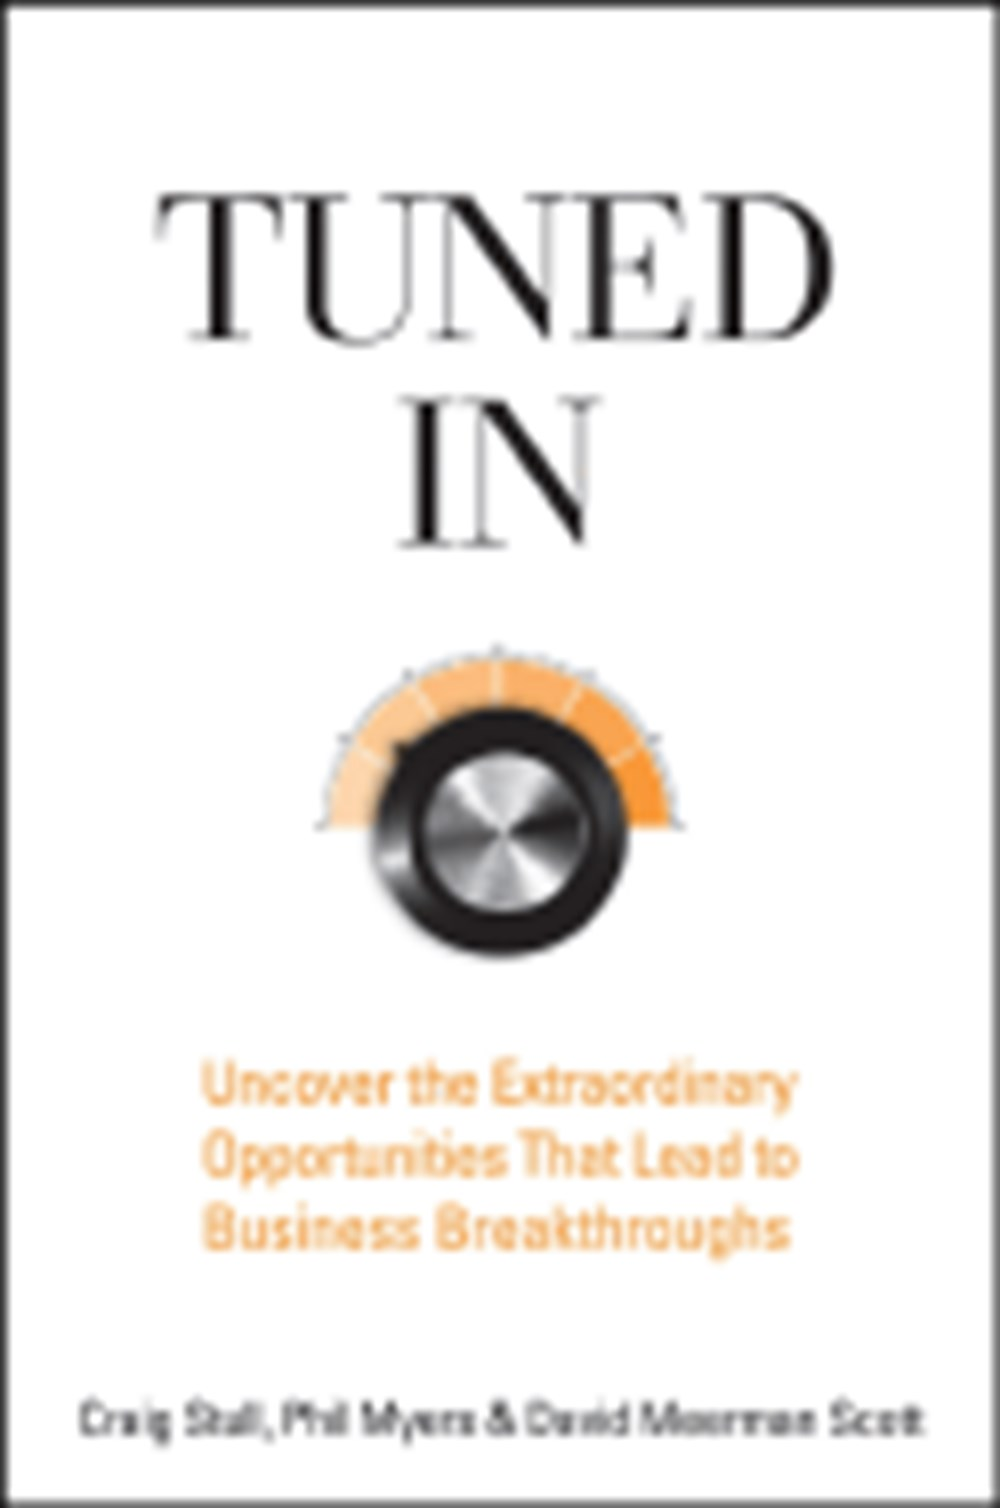 Tuned in Uncover the Extraordinary Opportunities That Lead to Business Breakthroughs